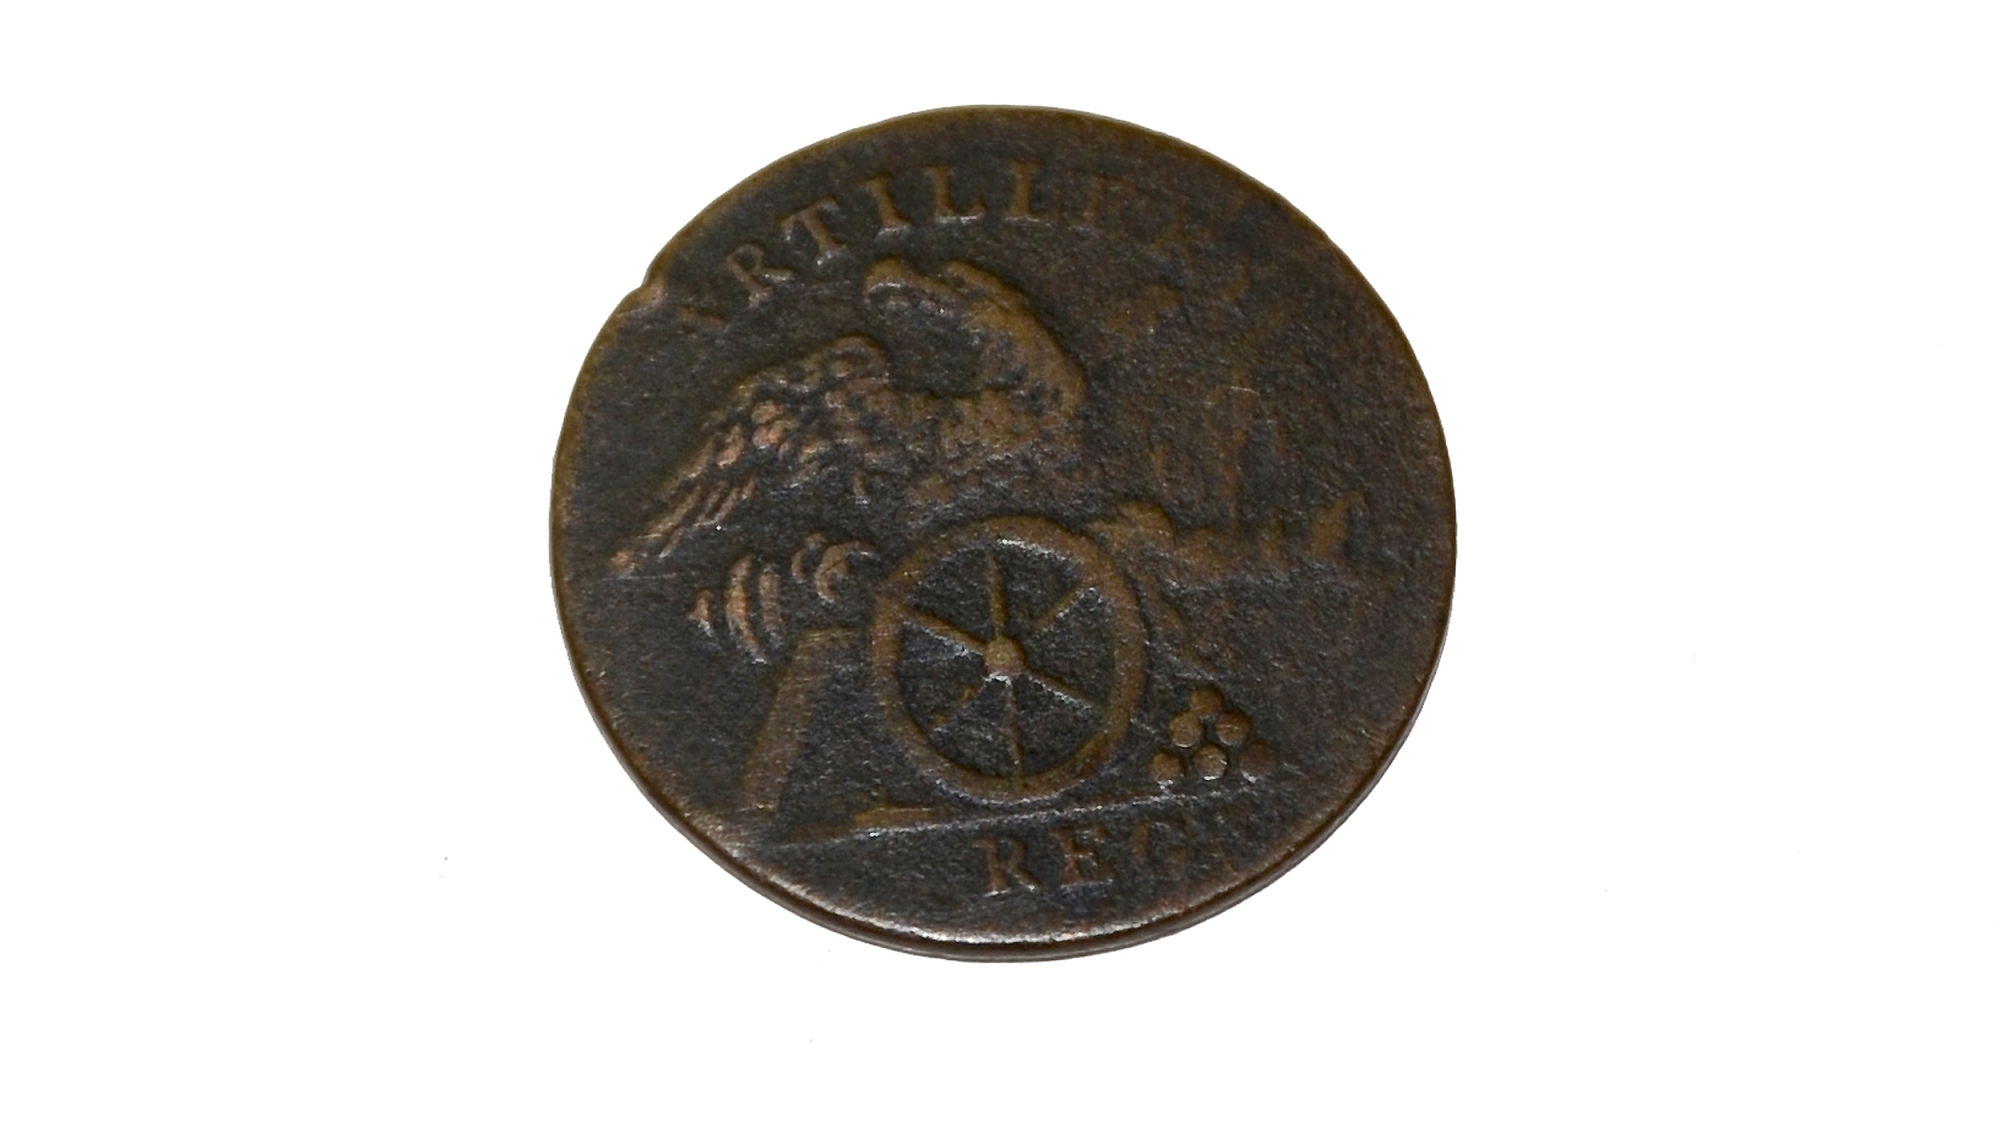 DUG US 1ST REGIMENT ARTILLERY COAT BUTTON